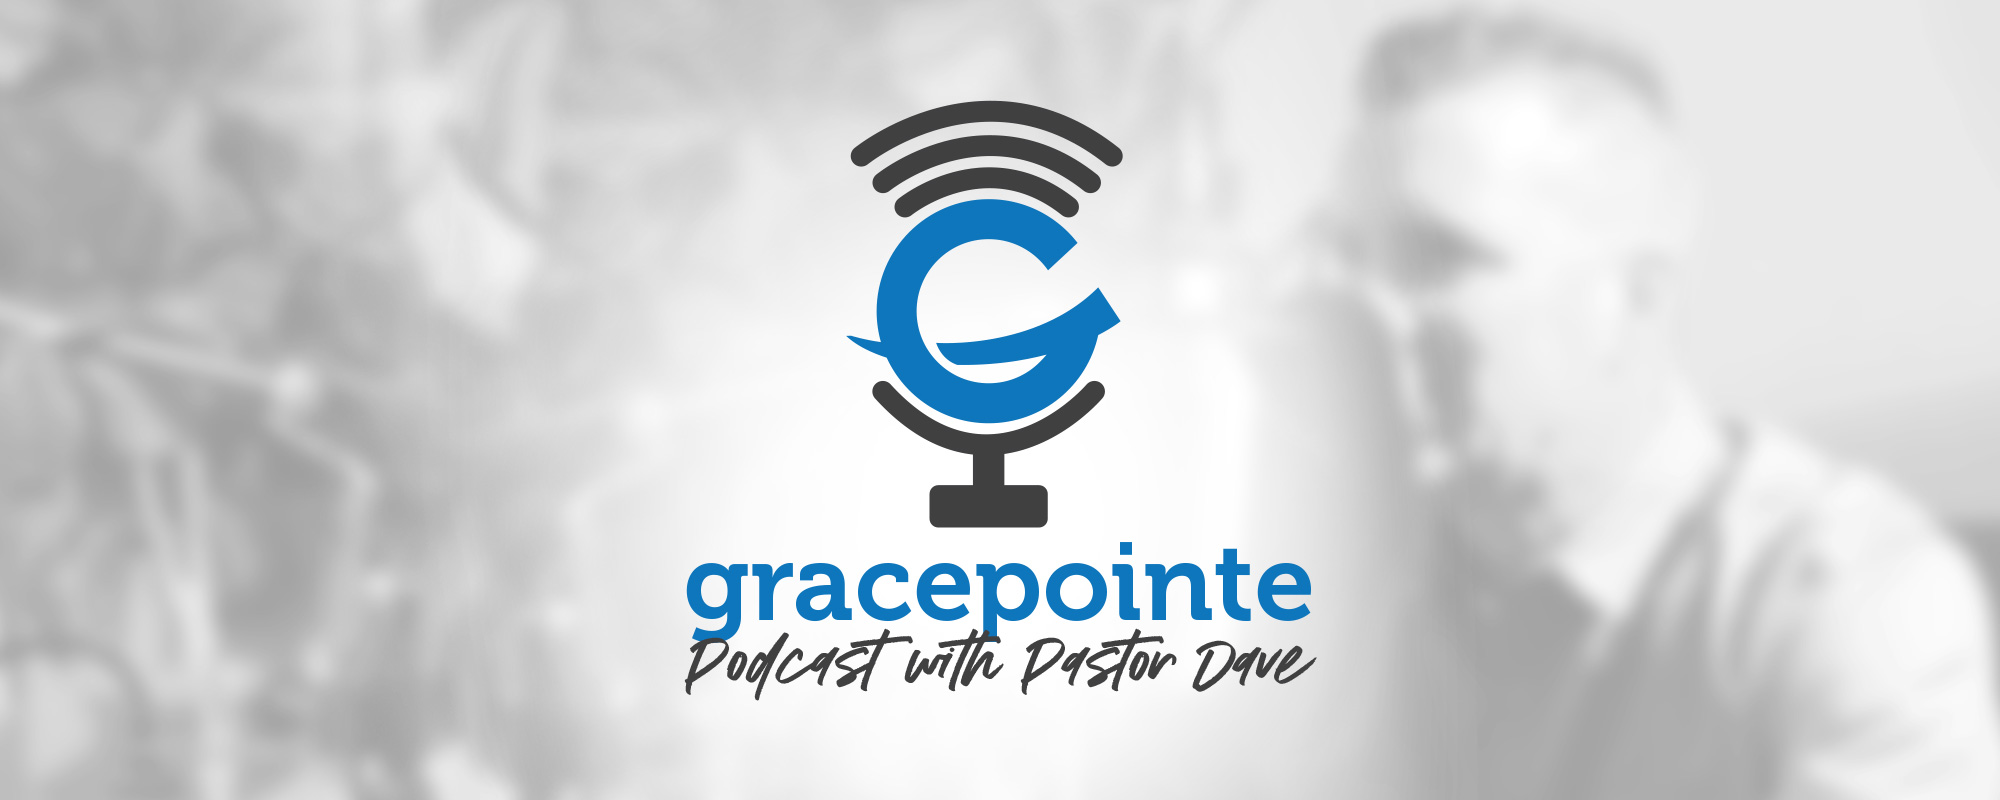 Gracepointe Podcast with Pastor Dave